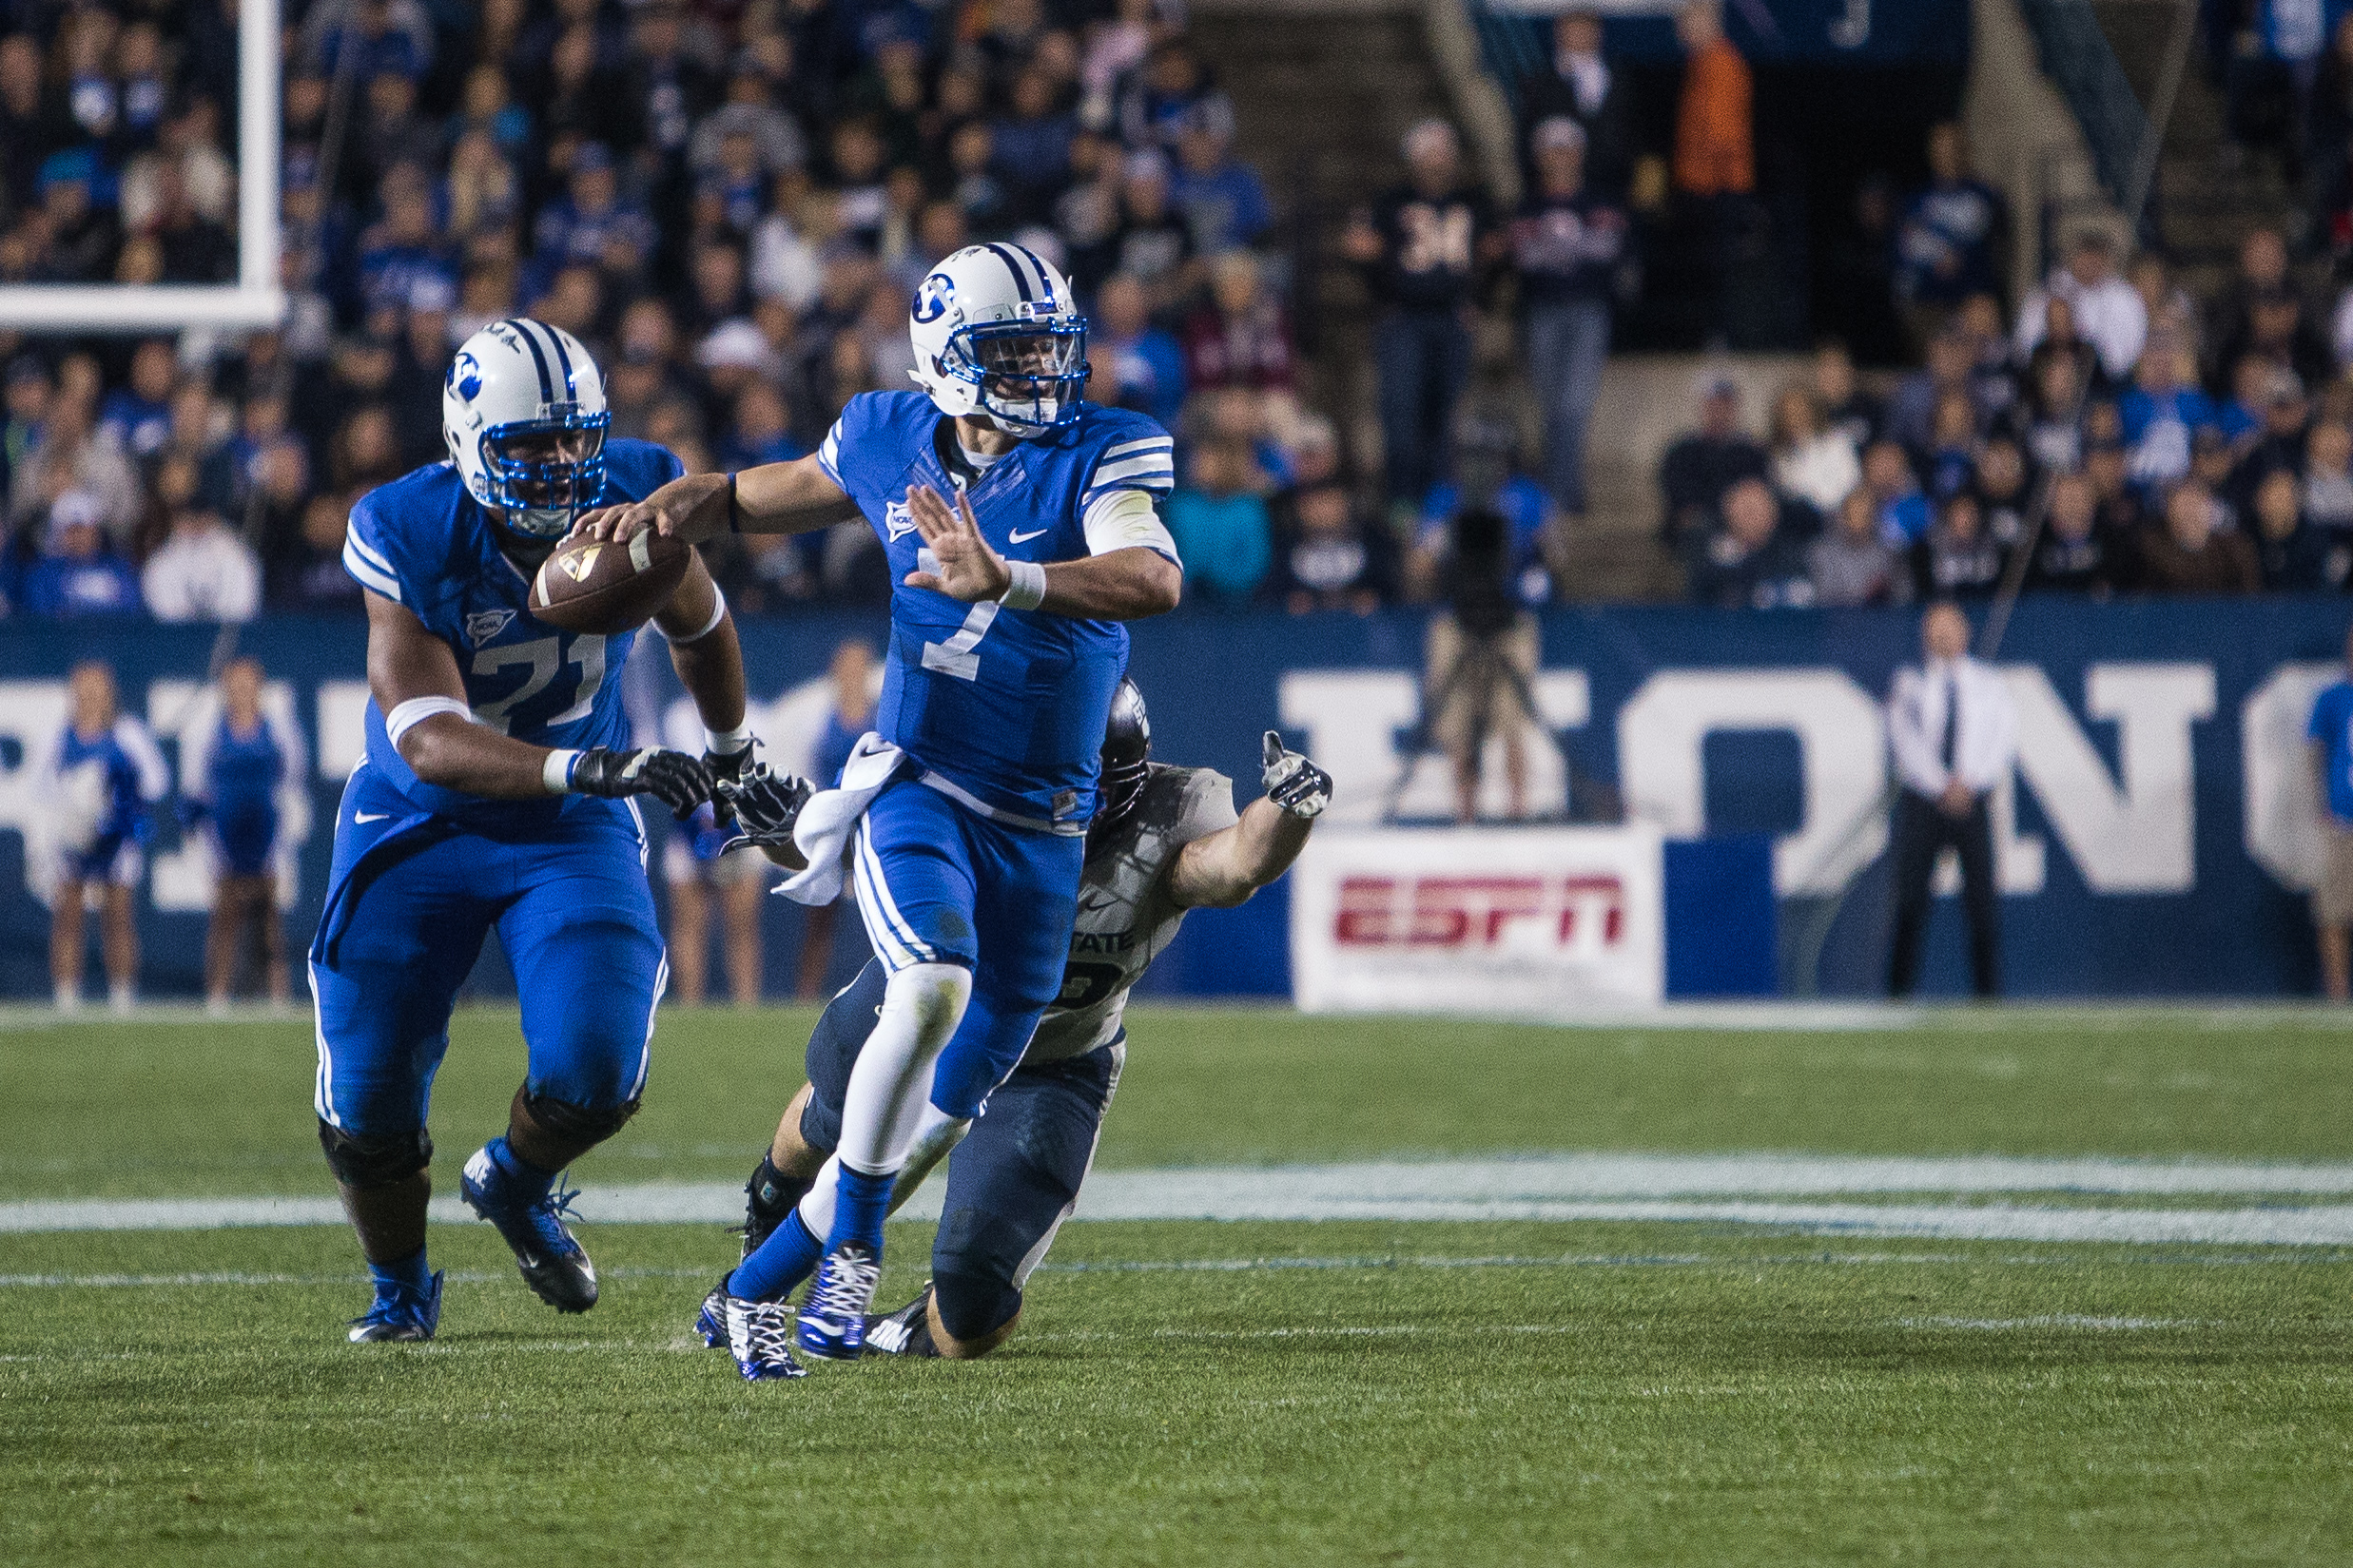 Christian Stewart looks for someone down field to throw the ball to in the game against Utah State. (Universe Photo)